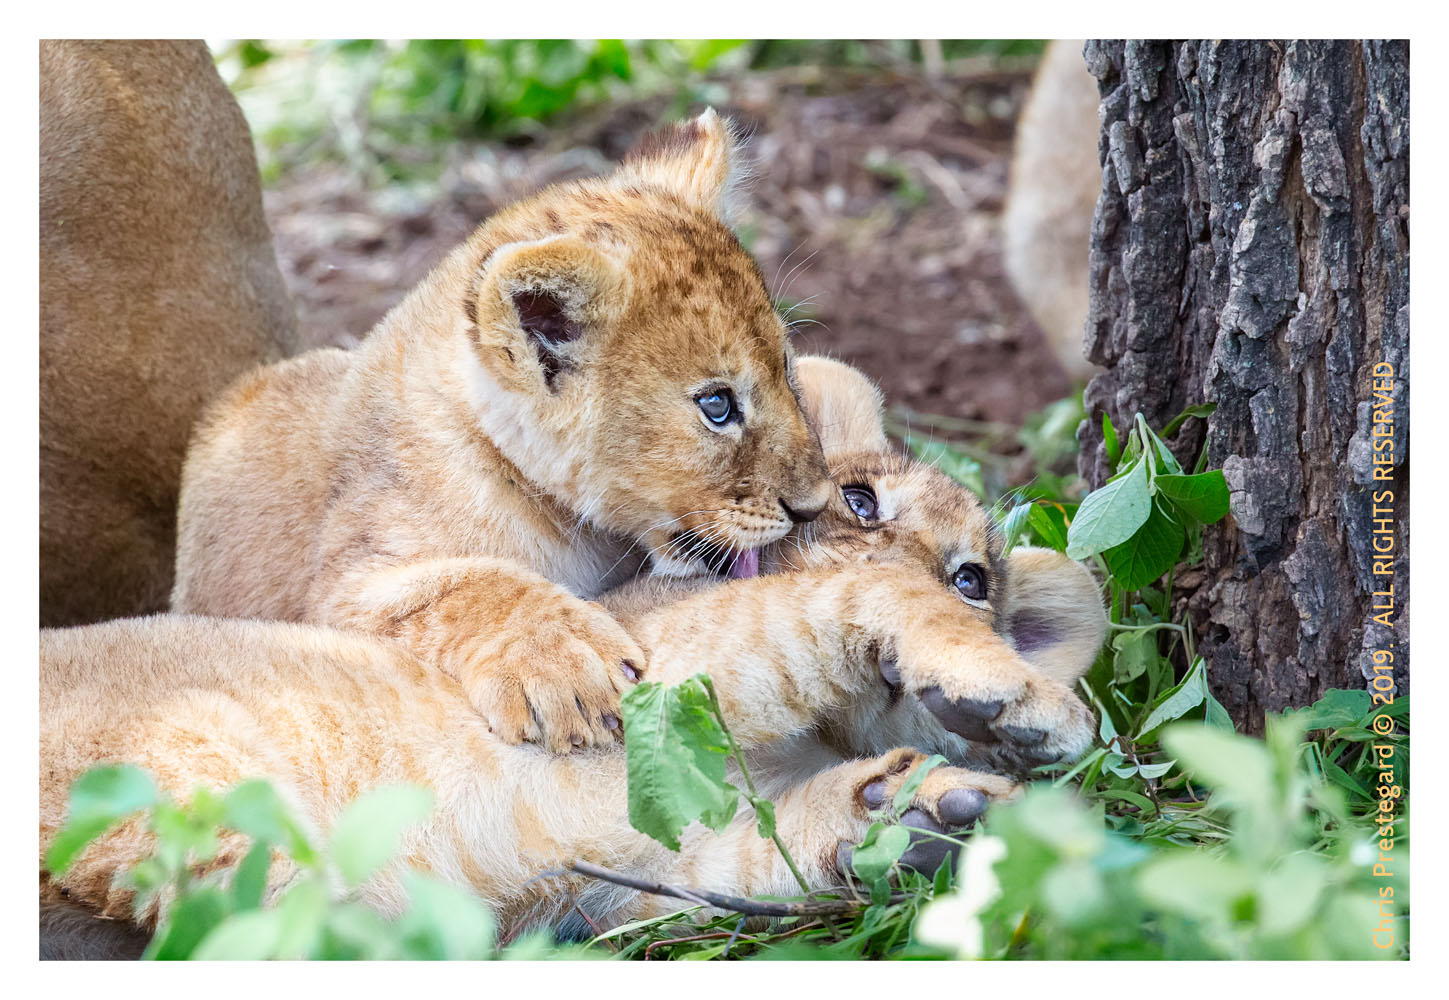 Lion cubs at Ndutu, Tanzania Feb. 2016